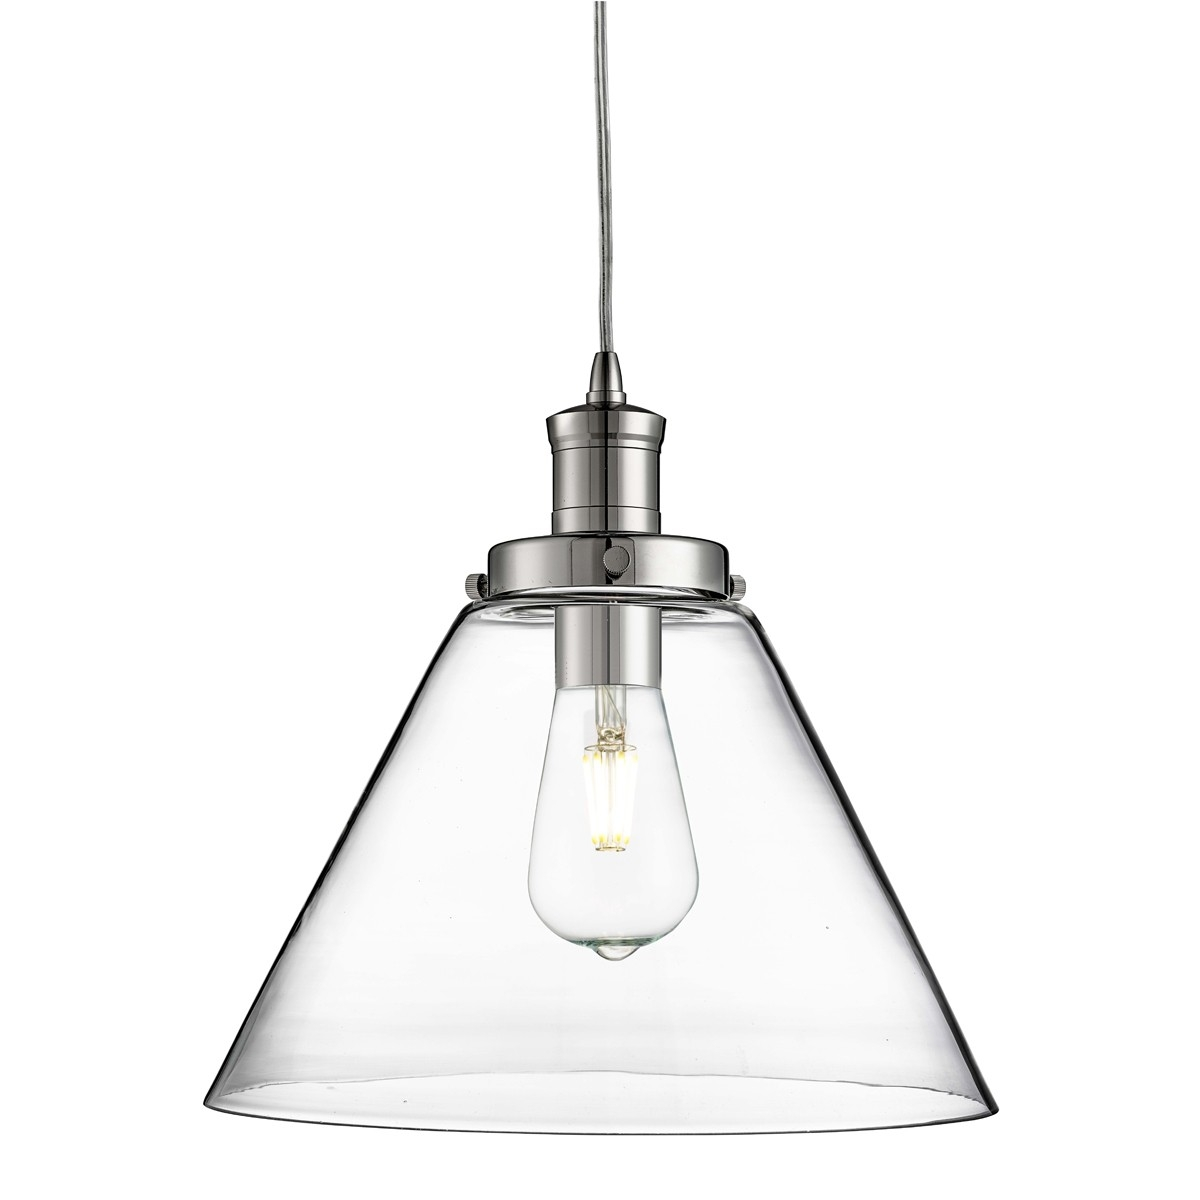 Chrome Pendant Light With Clear Glass Shade With Regard To Chrome And Glass Chandeliers (Image 6 of 25)